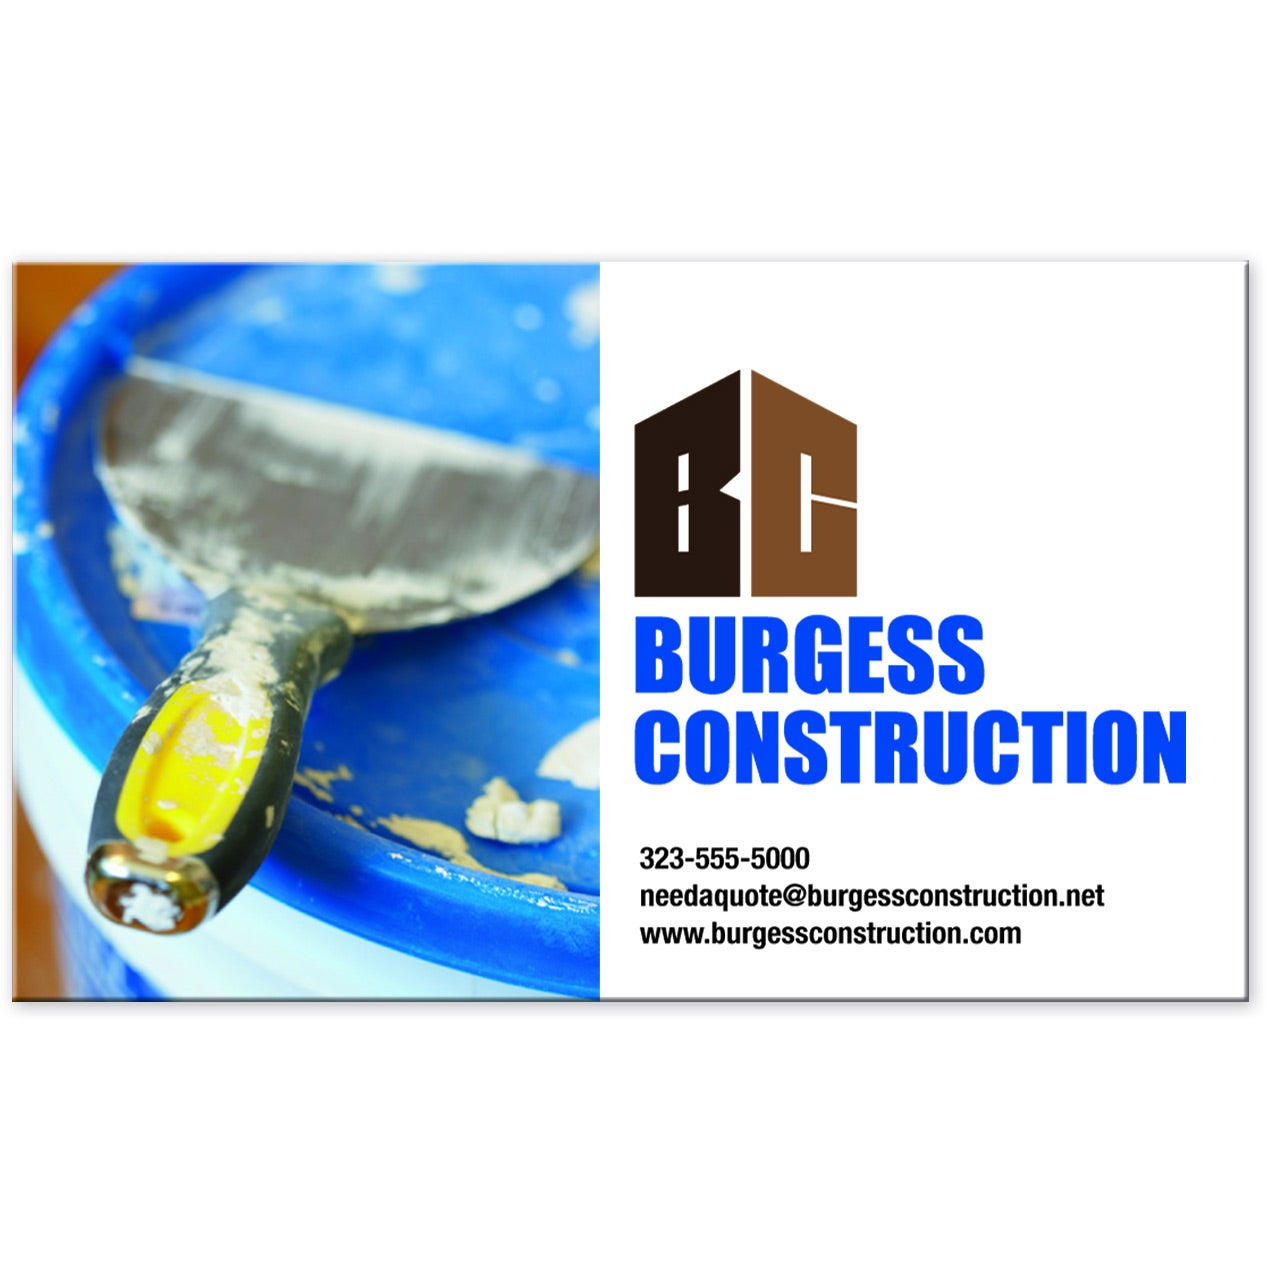 New Photos Of Magnet Business Cards - The Business Cards Design ...